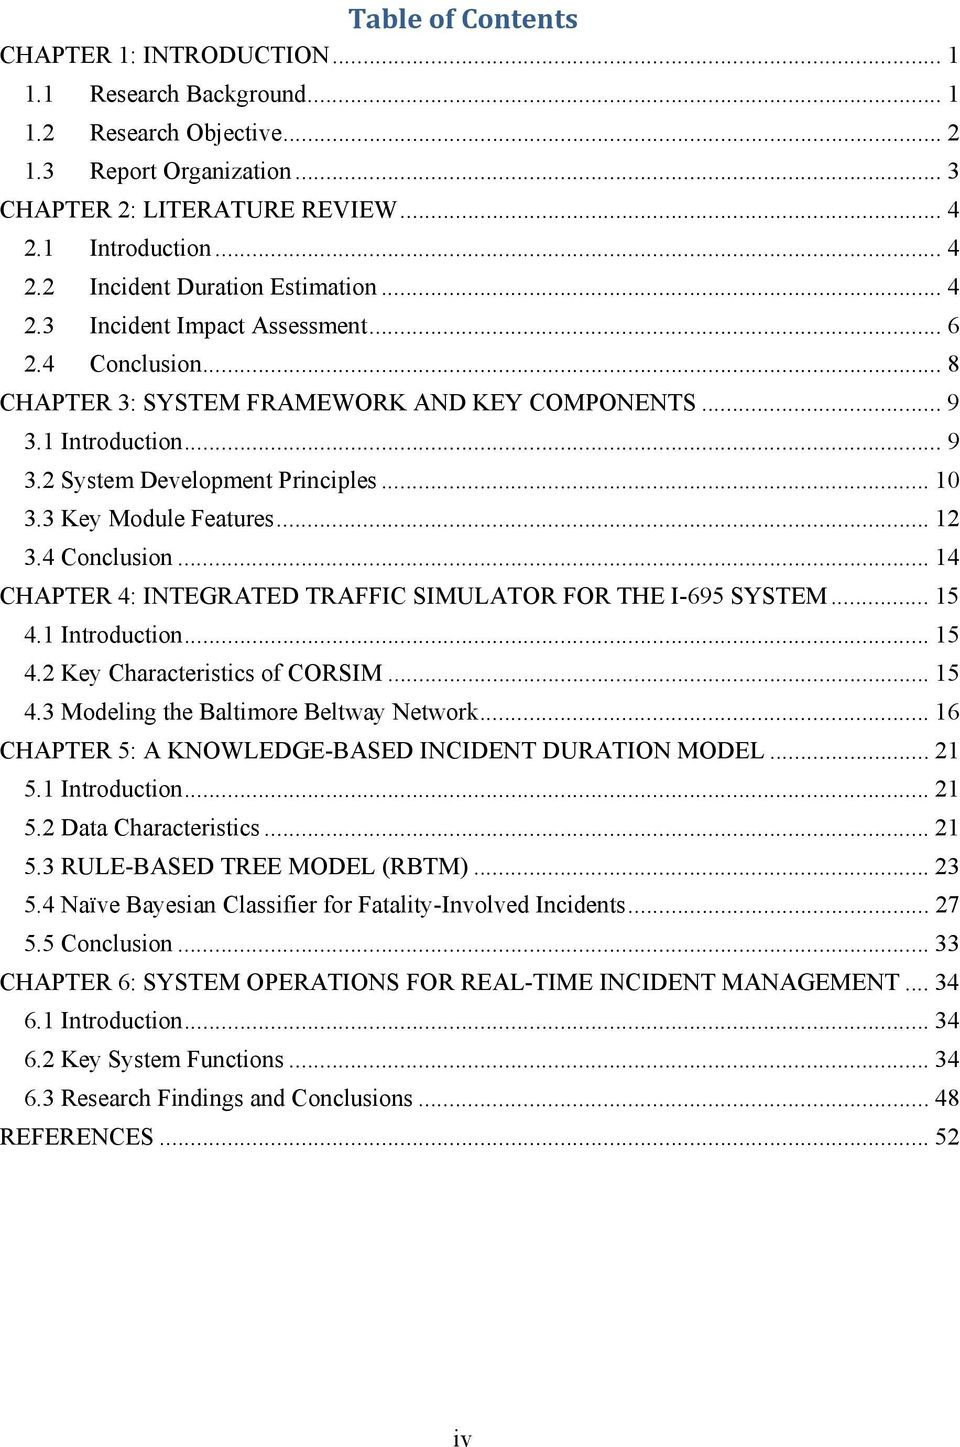 .. 12 3.4 Conclusion... 14 CHAPTER 4: INTEGRATED TRAFFIC SIMULATOR FOR THE I-695 SYSTEM... 15 4.1 Introduction... 15 4.2 Key Characteristics of CORSIM... 15 4.3 Modeling the Baltimore Beltway Network.